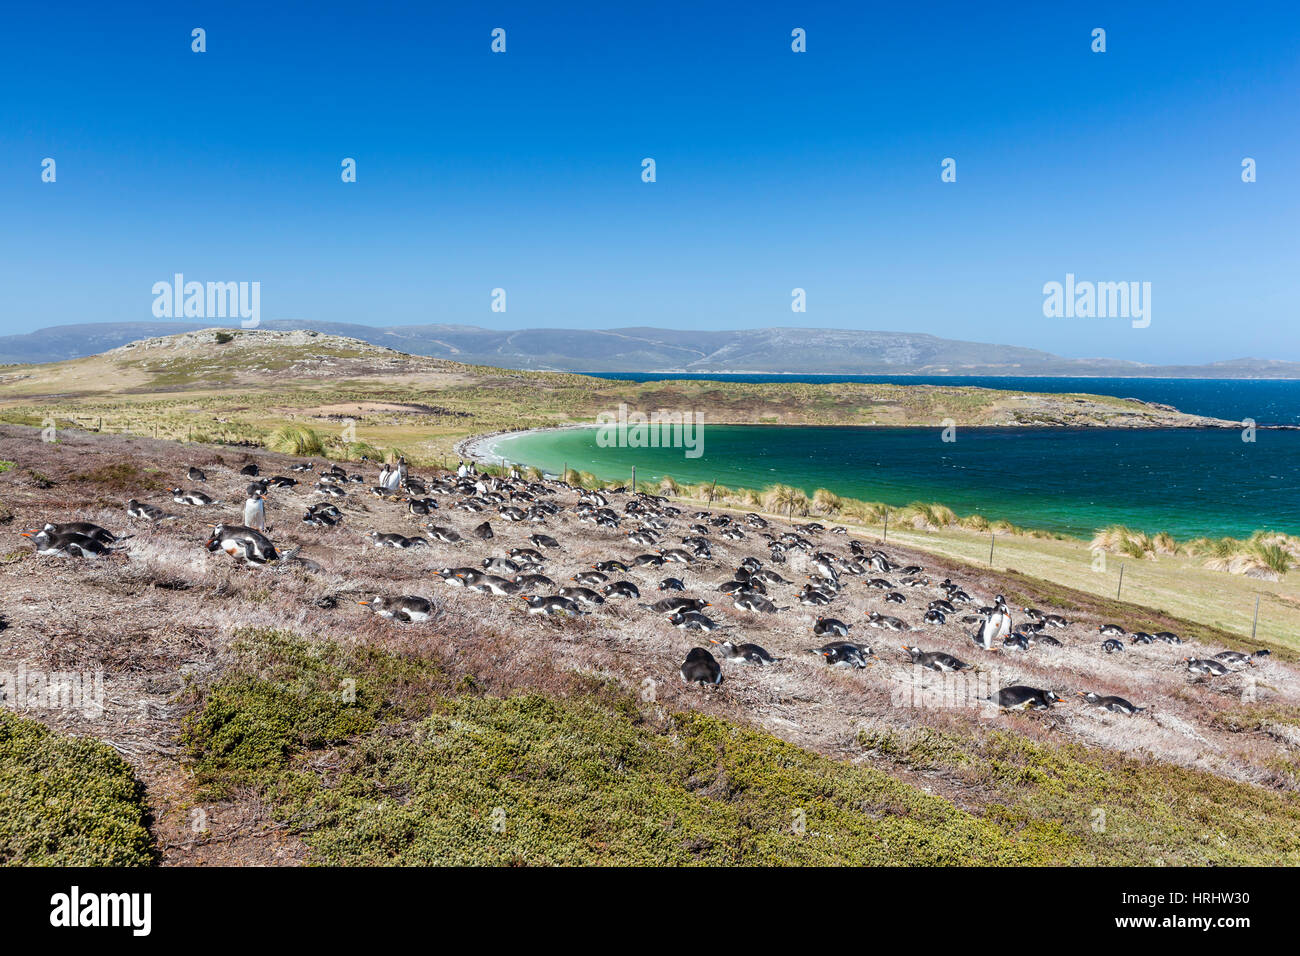 Gentoo penguin (Pygoscelis papua) breeding colony on the slopes of Carcass Island, Falkland Islands - Stock Image